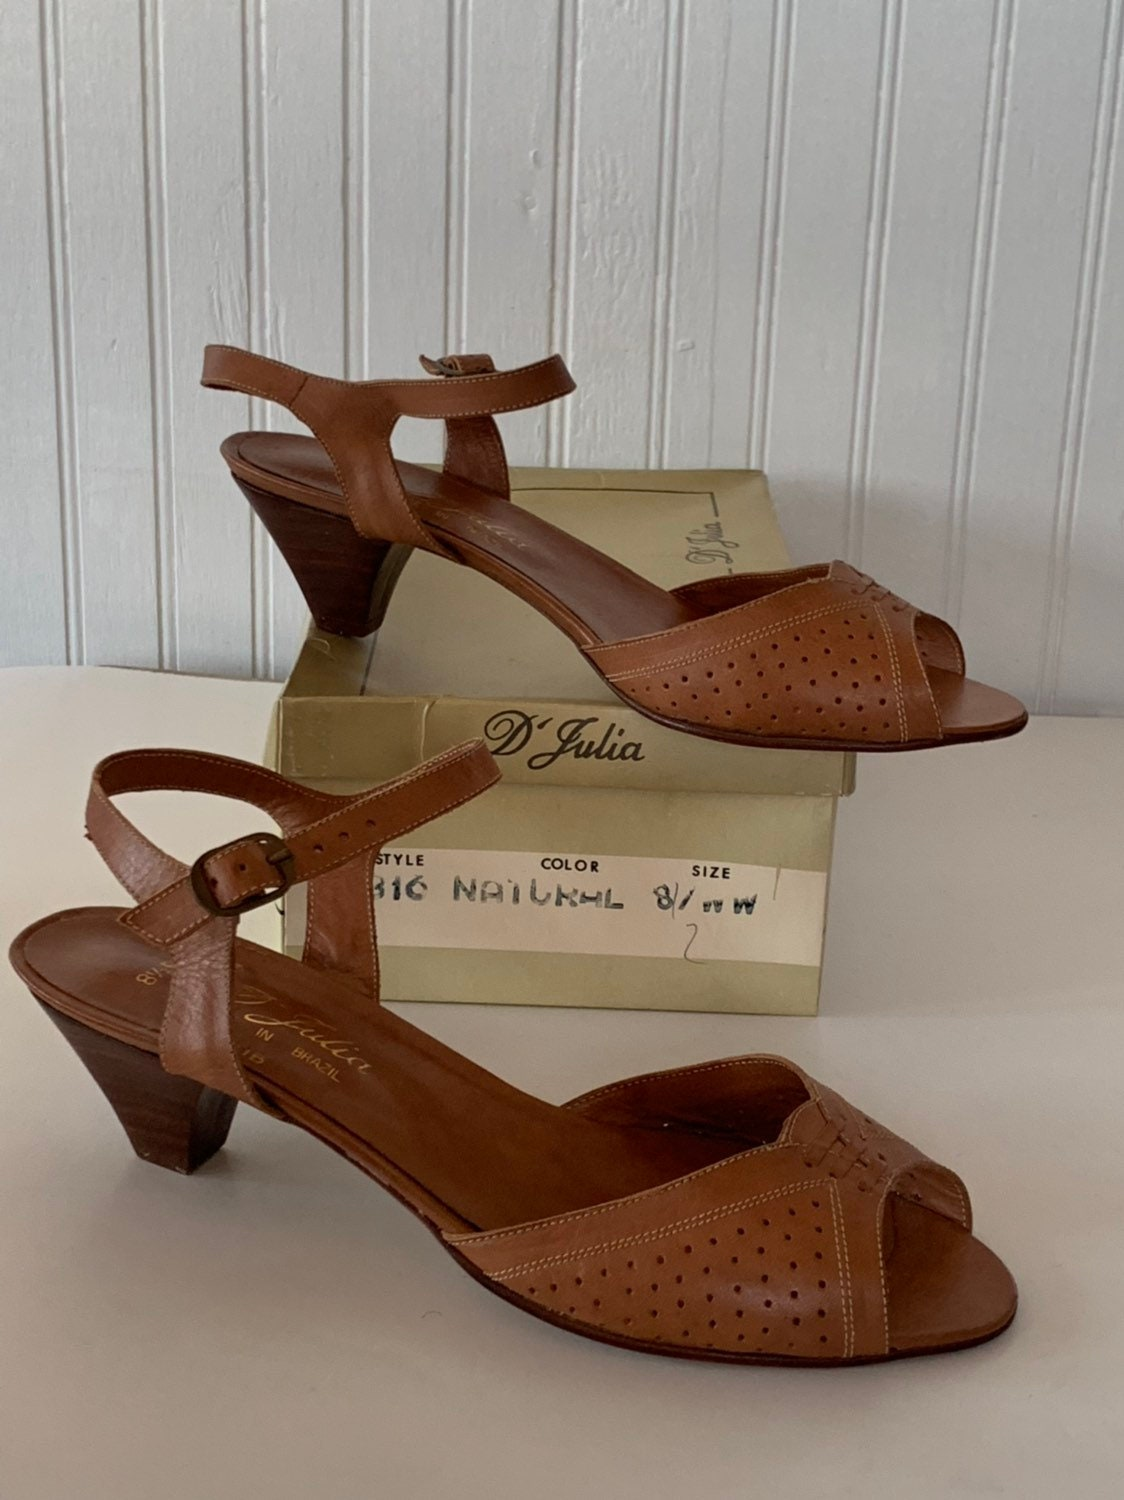 e55f1d98503 Vintage 70s Deadstock Size 8.5 Wide Width Leather Sandals Brown Low Heel  Mint New Condition Spring Shoes D Julia Brazil 8 80s 8.5WW